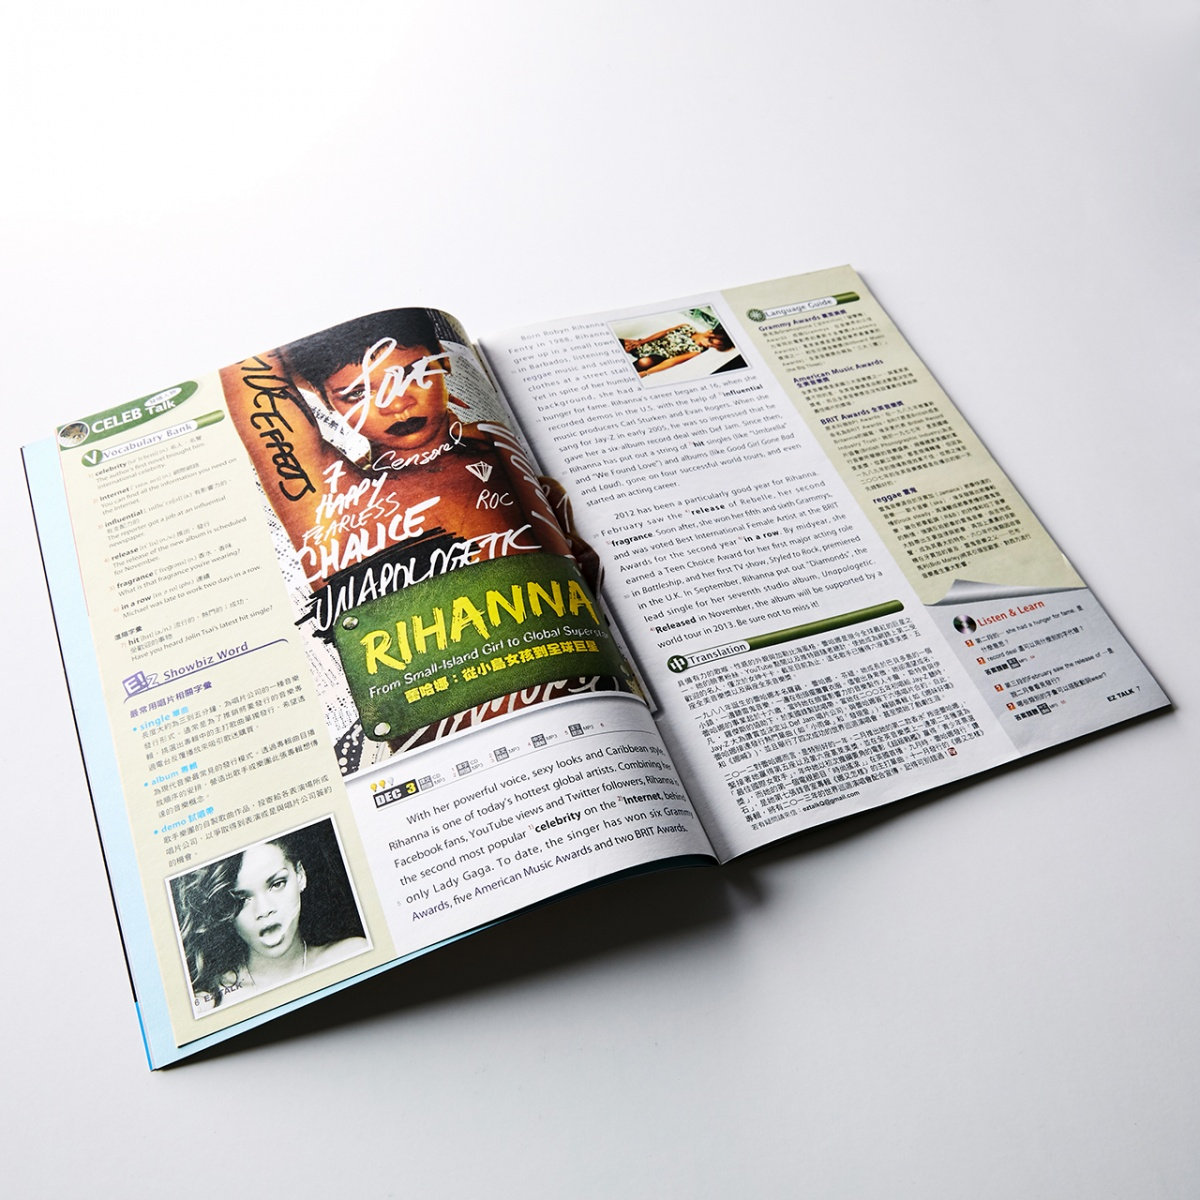 Rihanna cover story layout design on fashion category magazine public in Taiwan in 2012